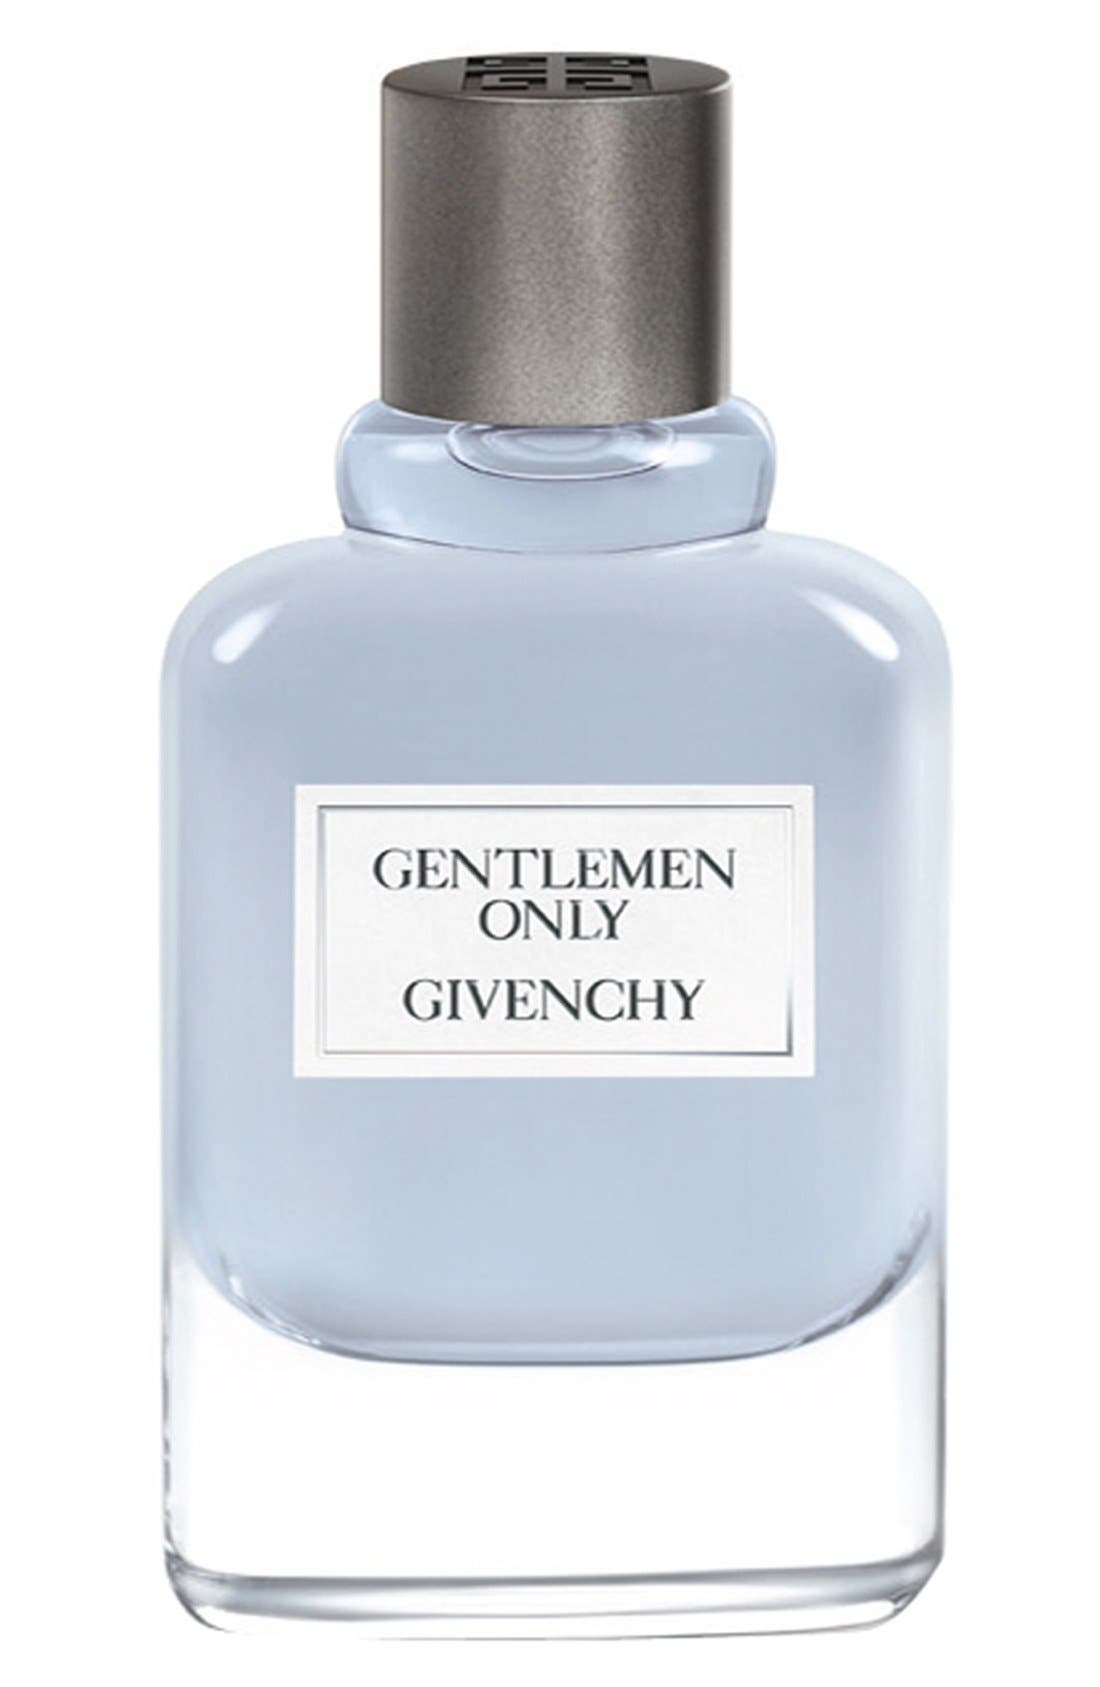 'Gentlemen Only' Eau de Toilette,                         Main,                         color, NO COLOR